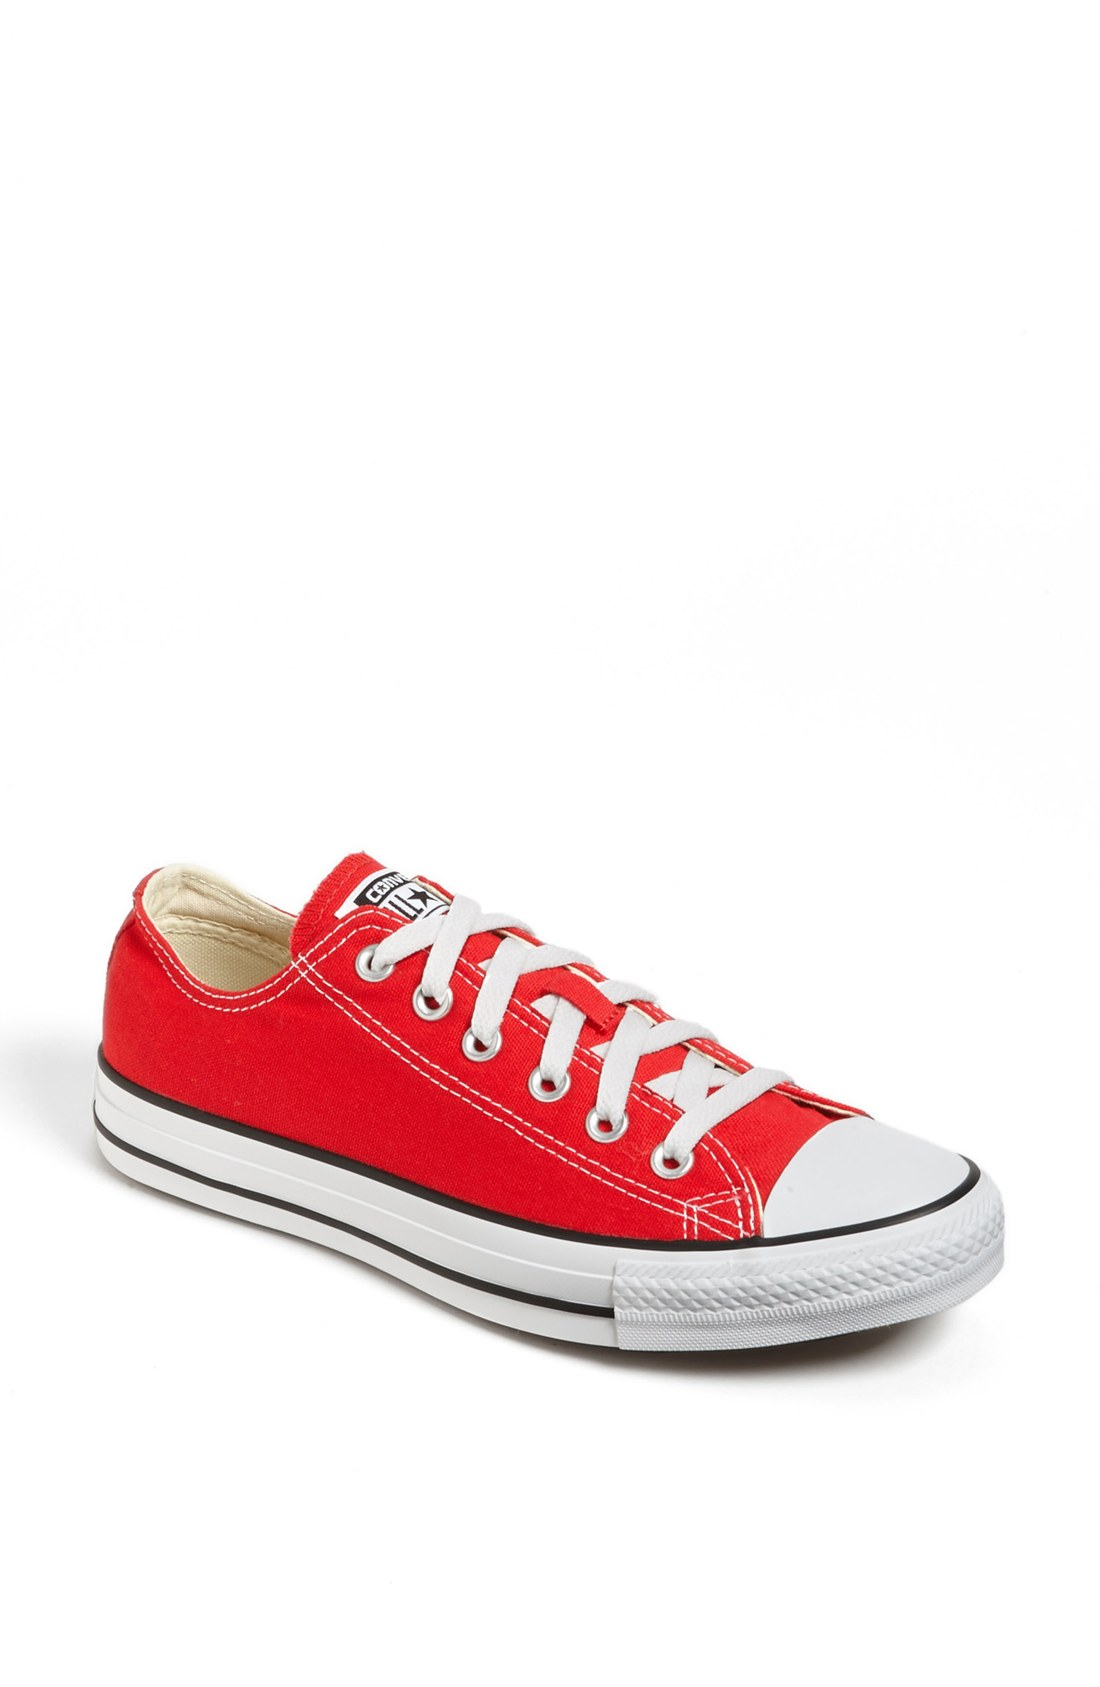 HD Quality Wallpaper | Collection: Products, 1100x1687 Converse